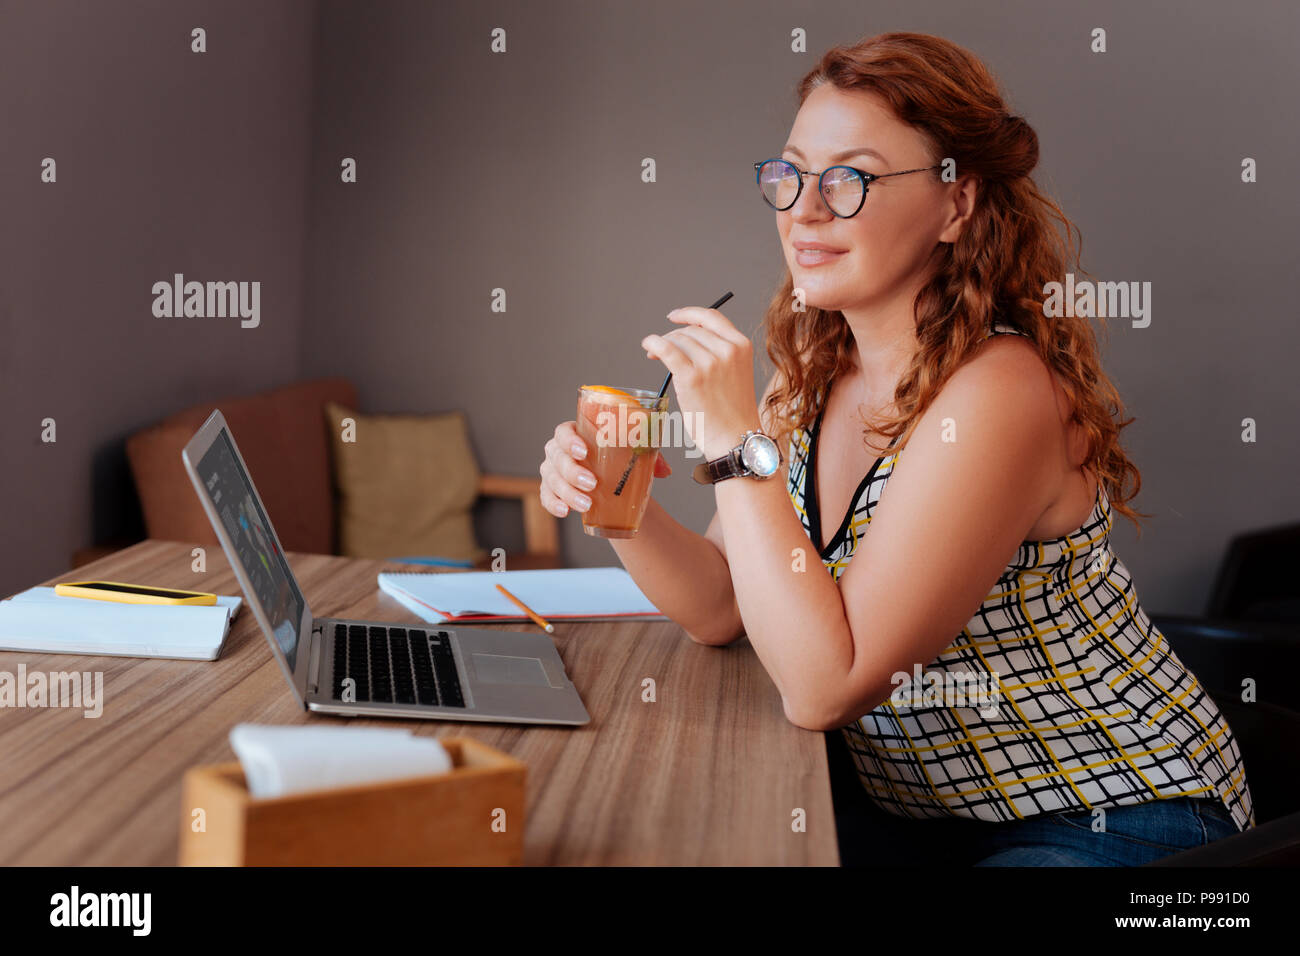 Appealing mature woman wearing glasses drinking cold cocktail - Stock Image